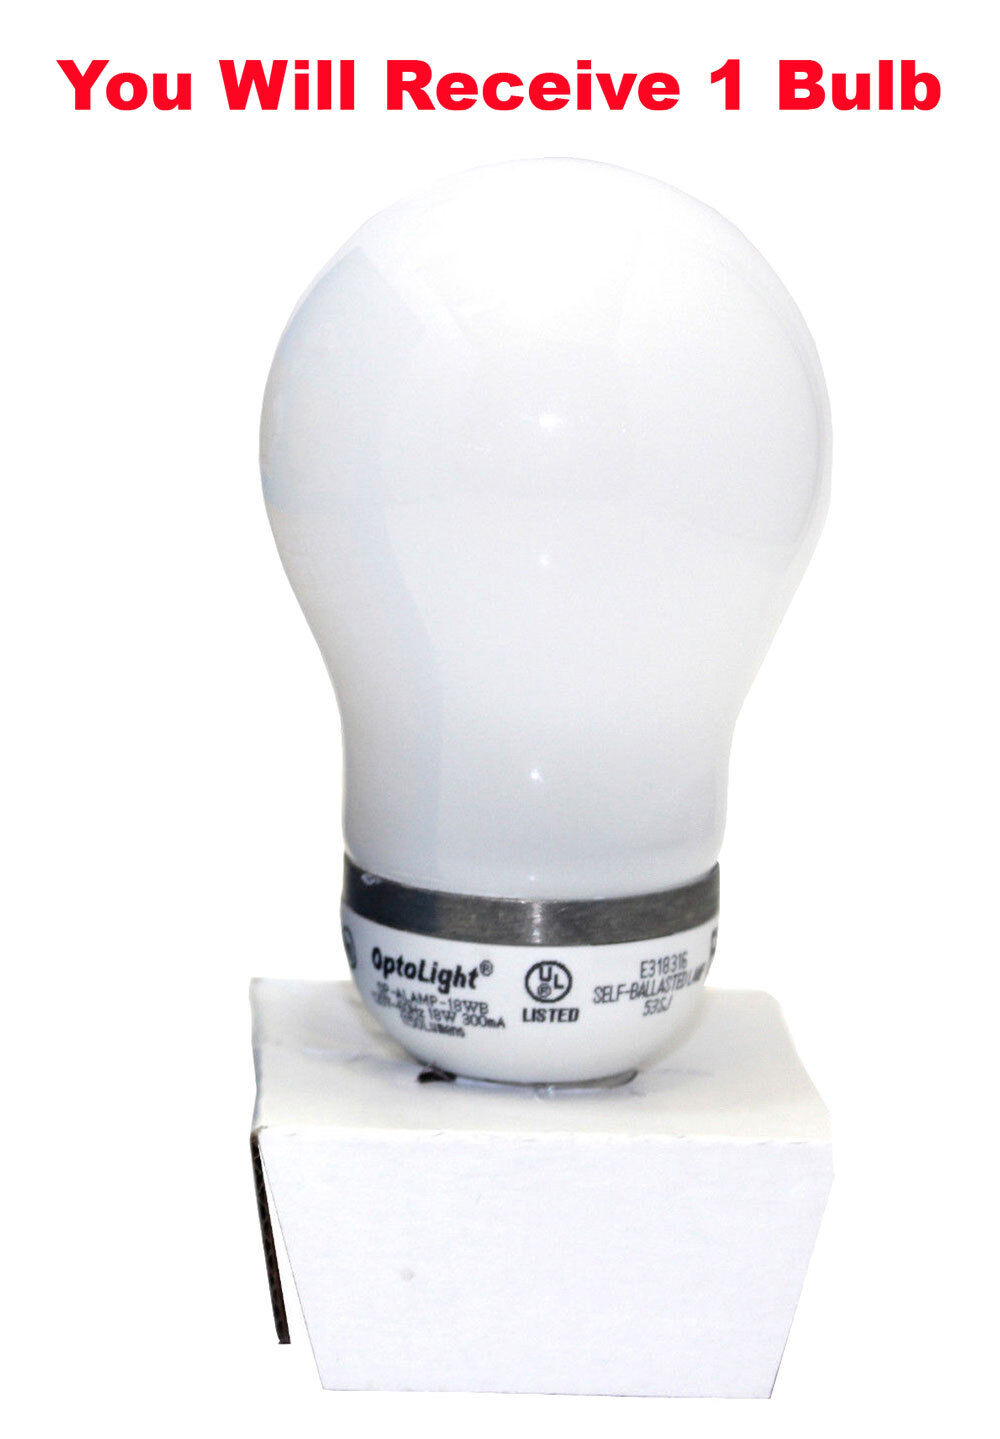 YOU WILL RECIVE 1 LIGHT BULB Plseae contact us for further questions or inquiries: